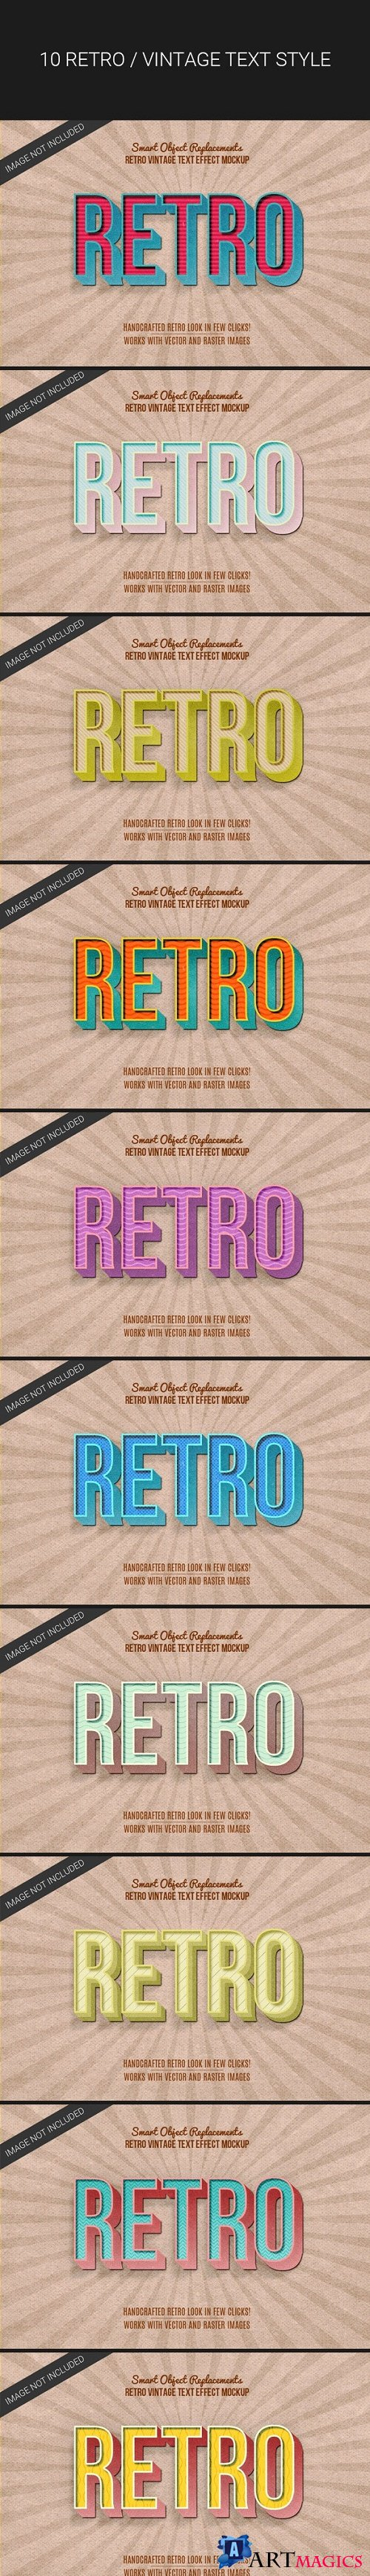 3D Retro Vintage Text Effects - 24381860